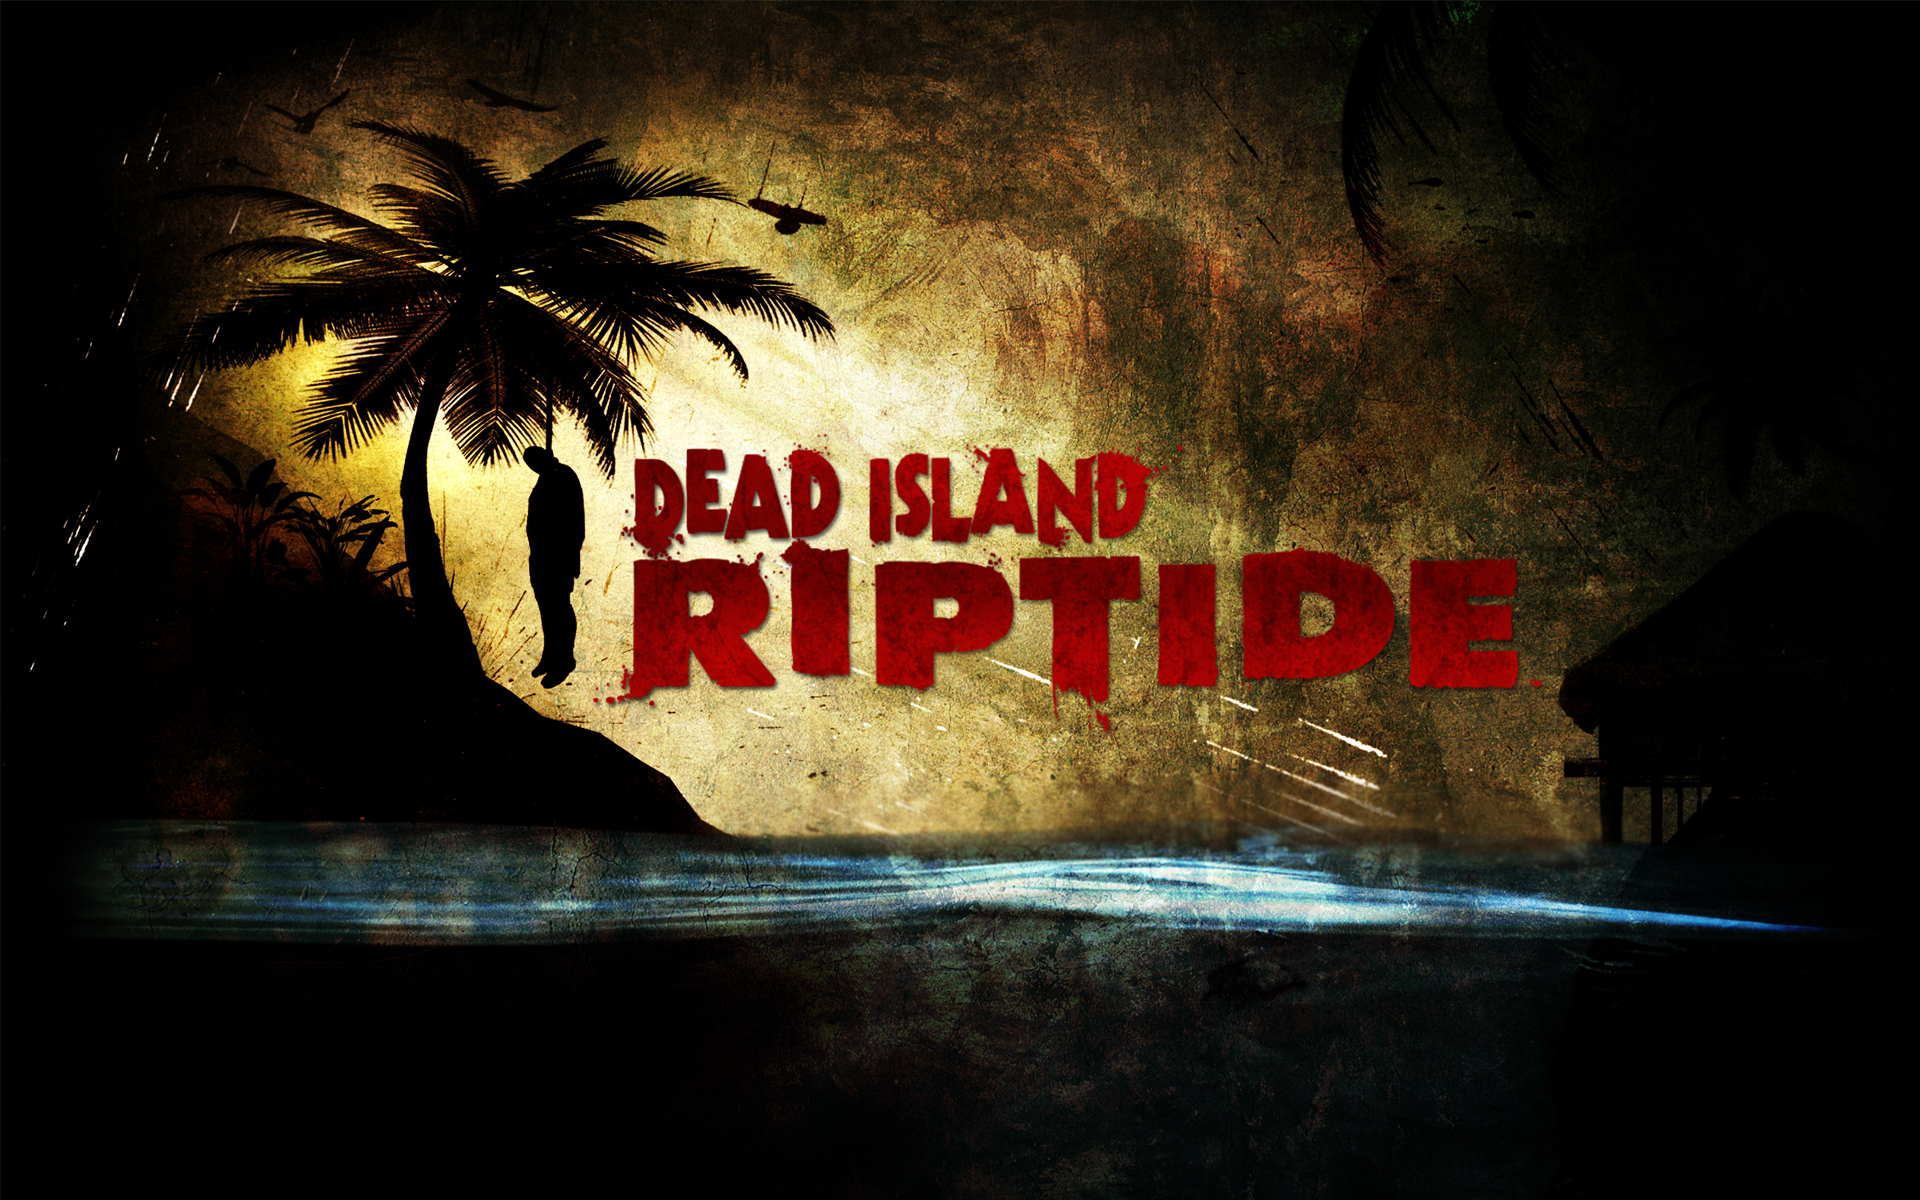 PAX East 2013: Dead Island: Riptide hands-on